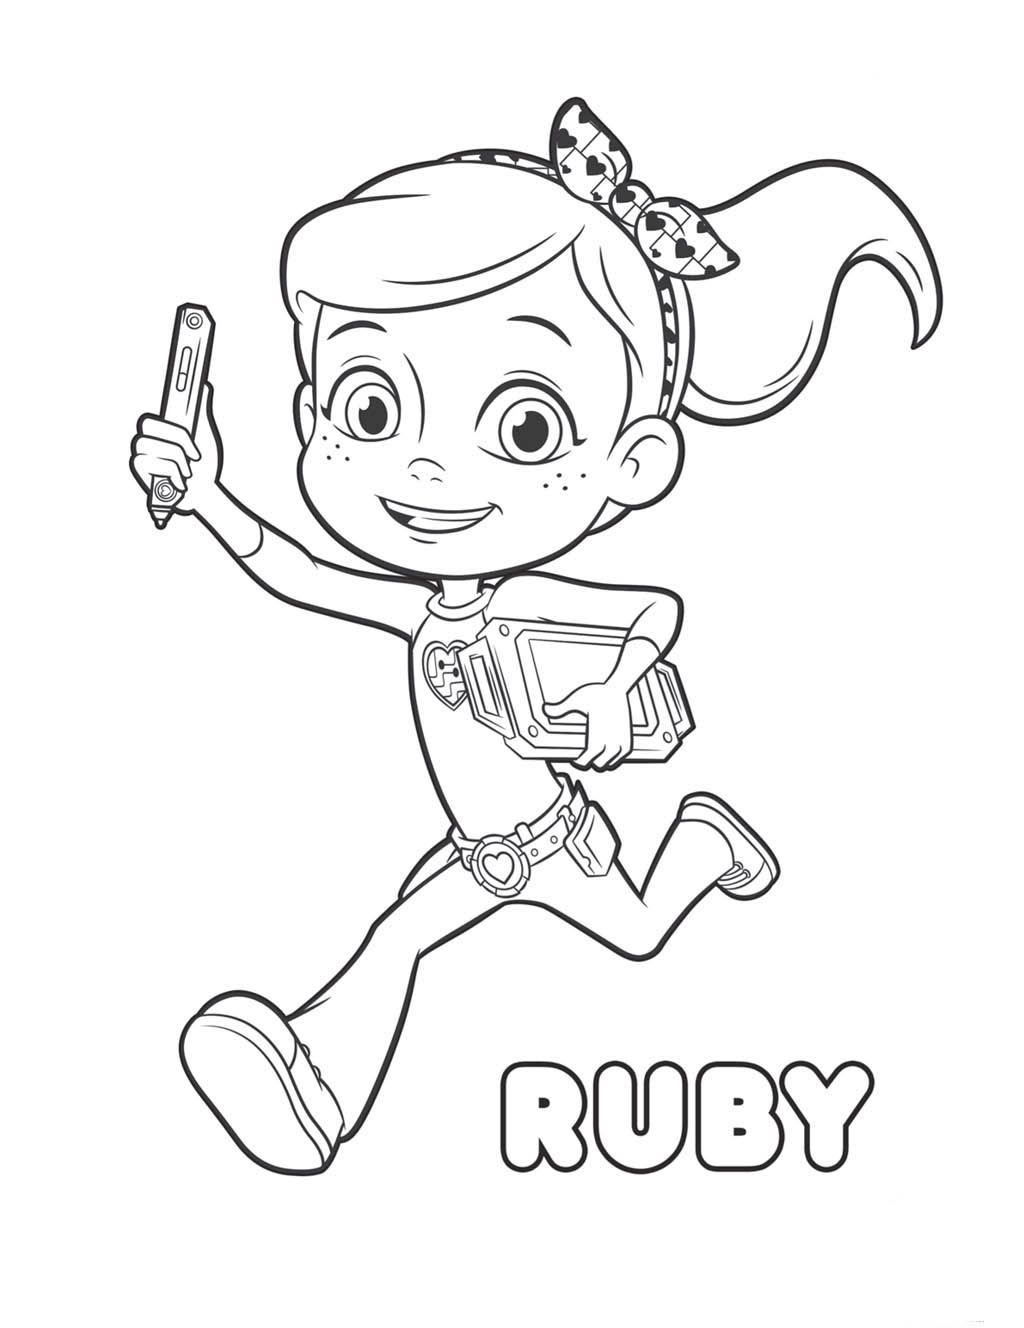 Desenhos para colorir do rusty rivets drawing pics for kids in